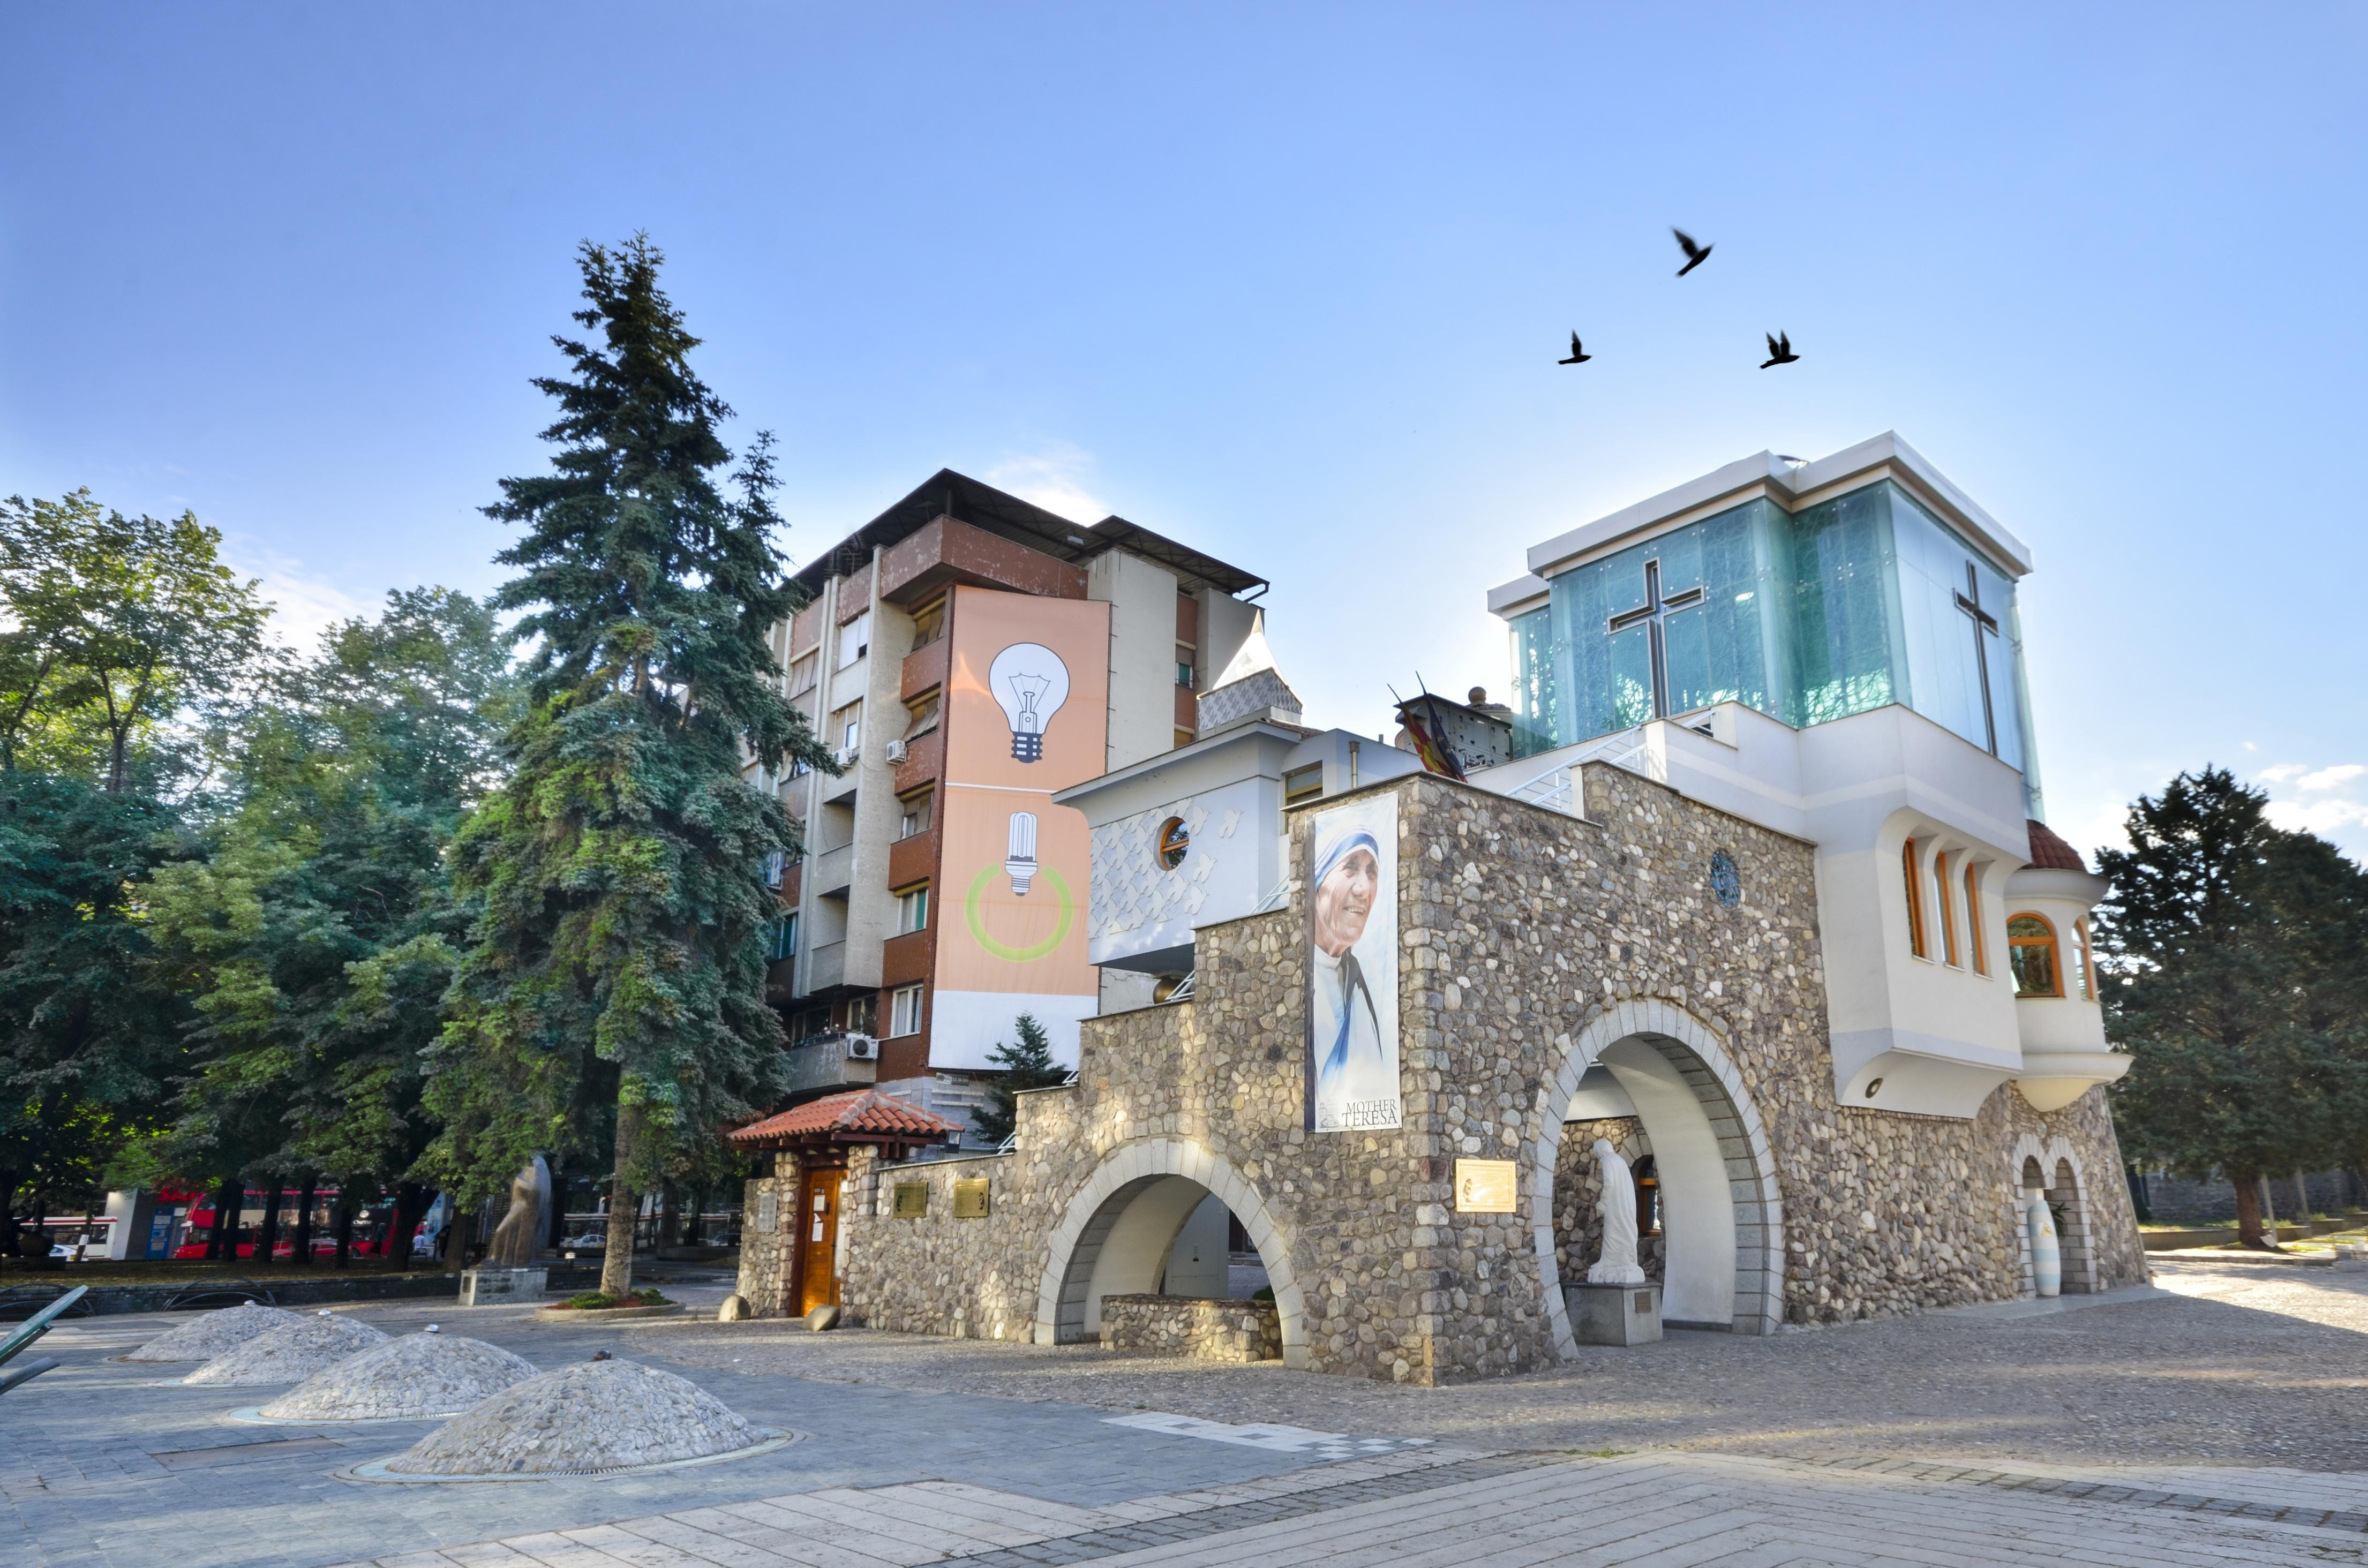 How to Spend 3 Days in Skopje